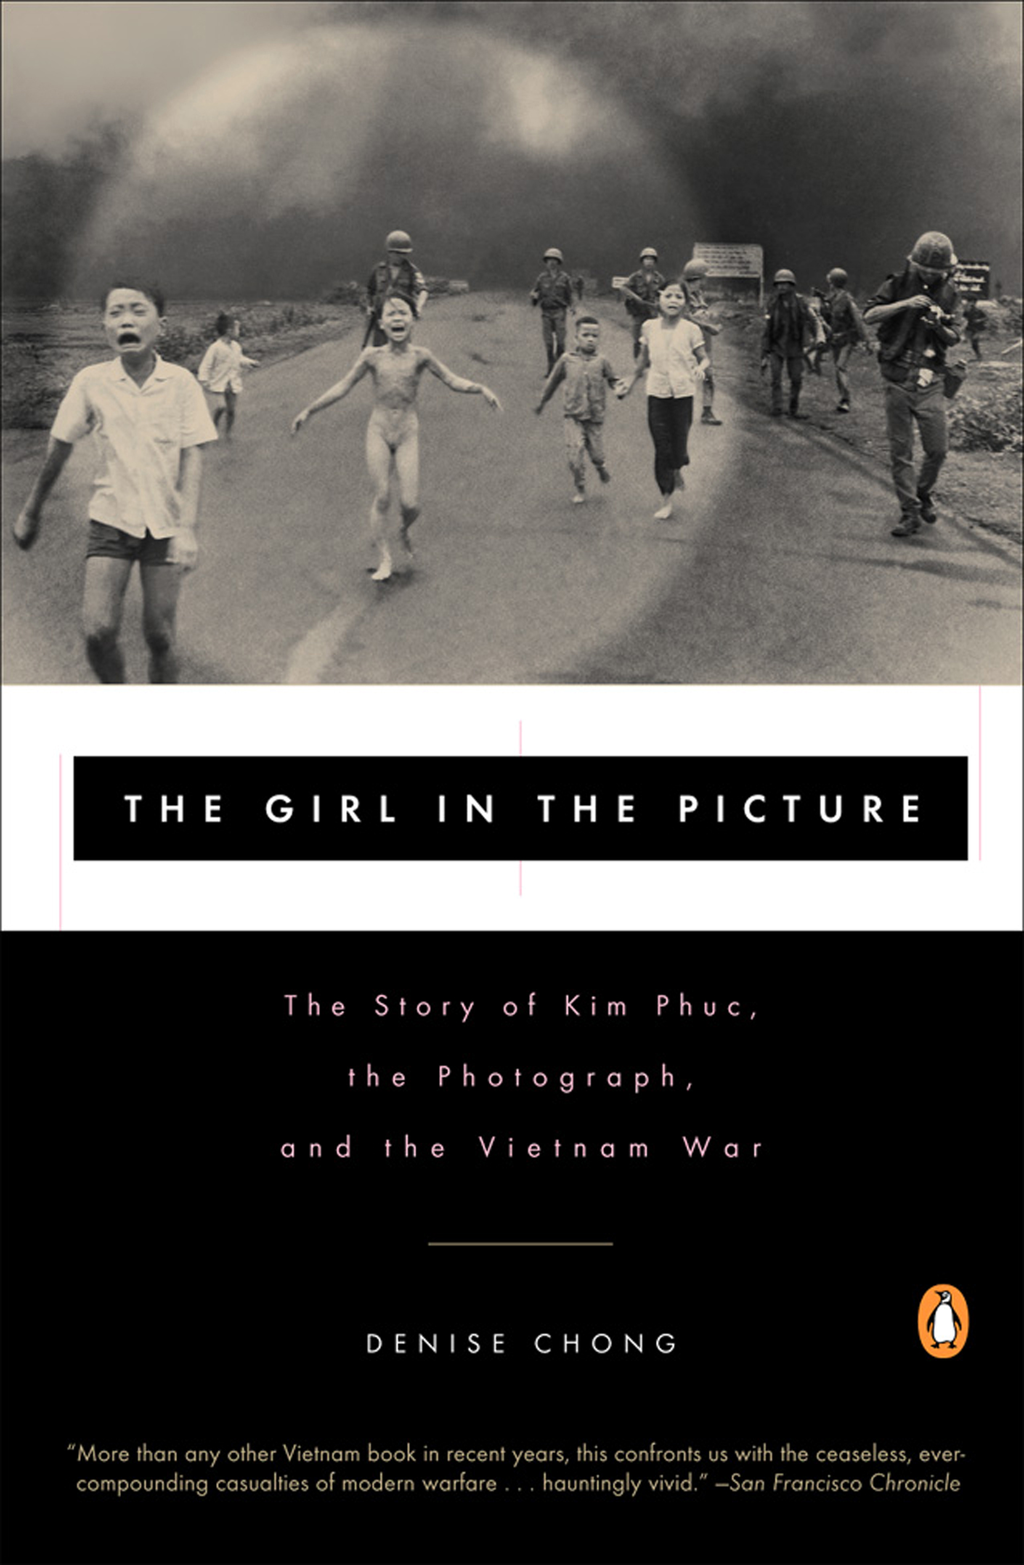 The Girl in the Picture: The Story of Kim Phuc, the Photograph, and the Vietnam War By: Denise Chong